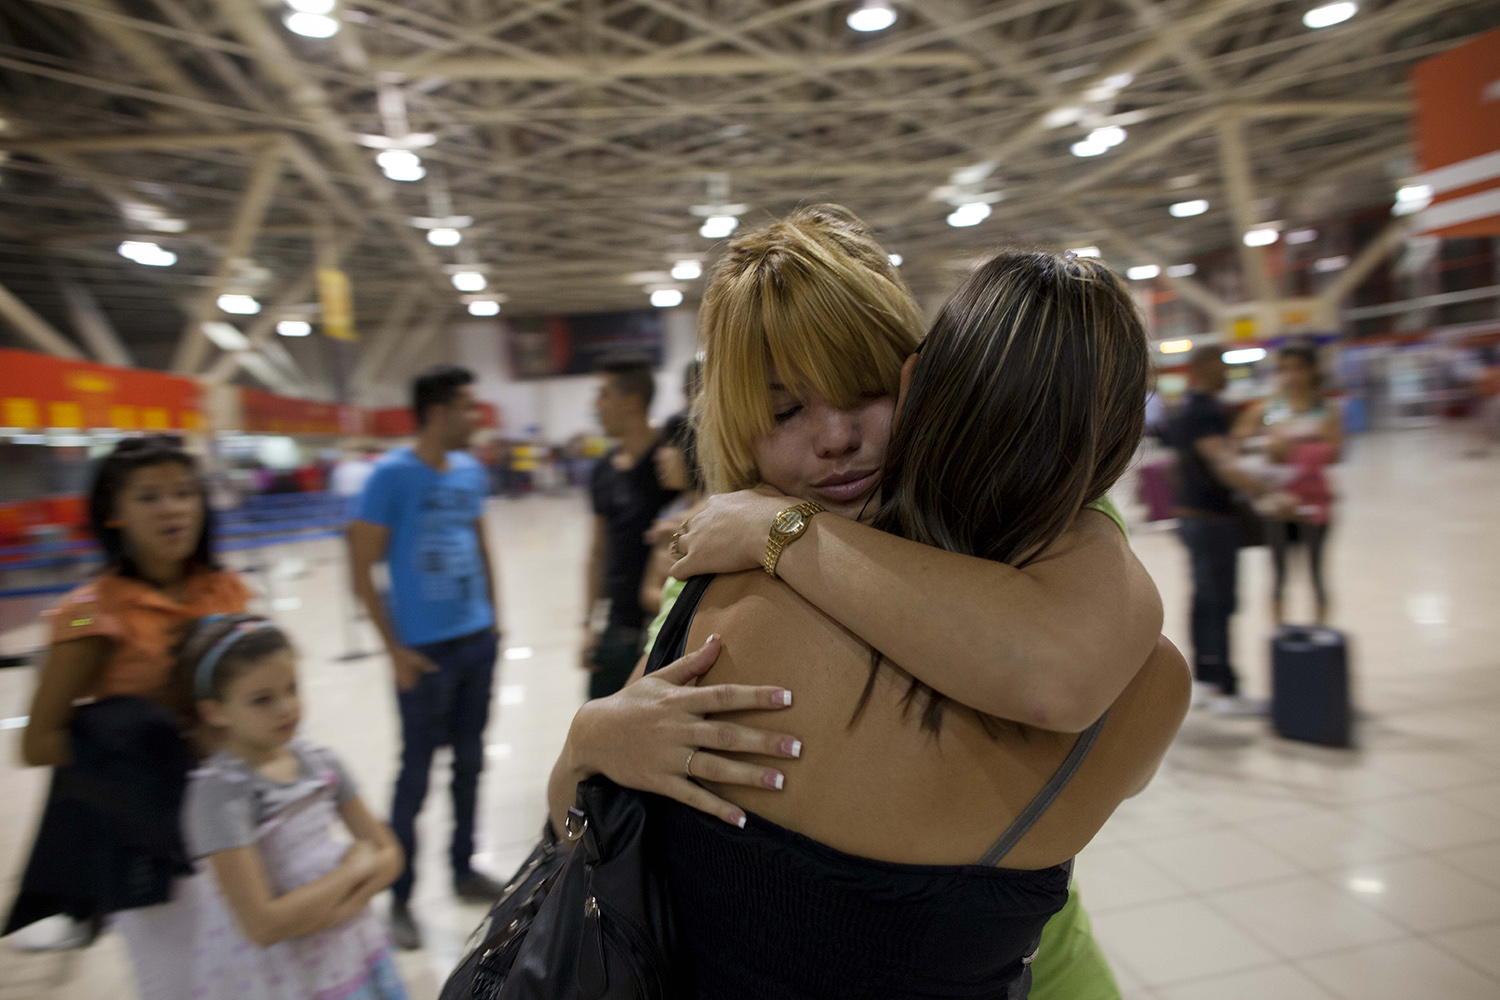 In this photo taken Jan. 30, 2013, Amalia Reigosa, hugs her sister Jaynet goodbye at the Jose Marti International Airport in Havana, Cuba, before her trip to Milan, Itlay. Reigosa was one of the first Cubans to take advantage of a travel reform that went into effect a year ago this week, when the government scrapped an exit visa requirement that for five decades had made it difficult for most islanders to go abroad. (AP Photo/Ramon Espinosa)